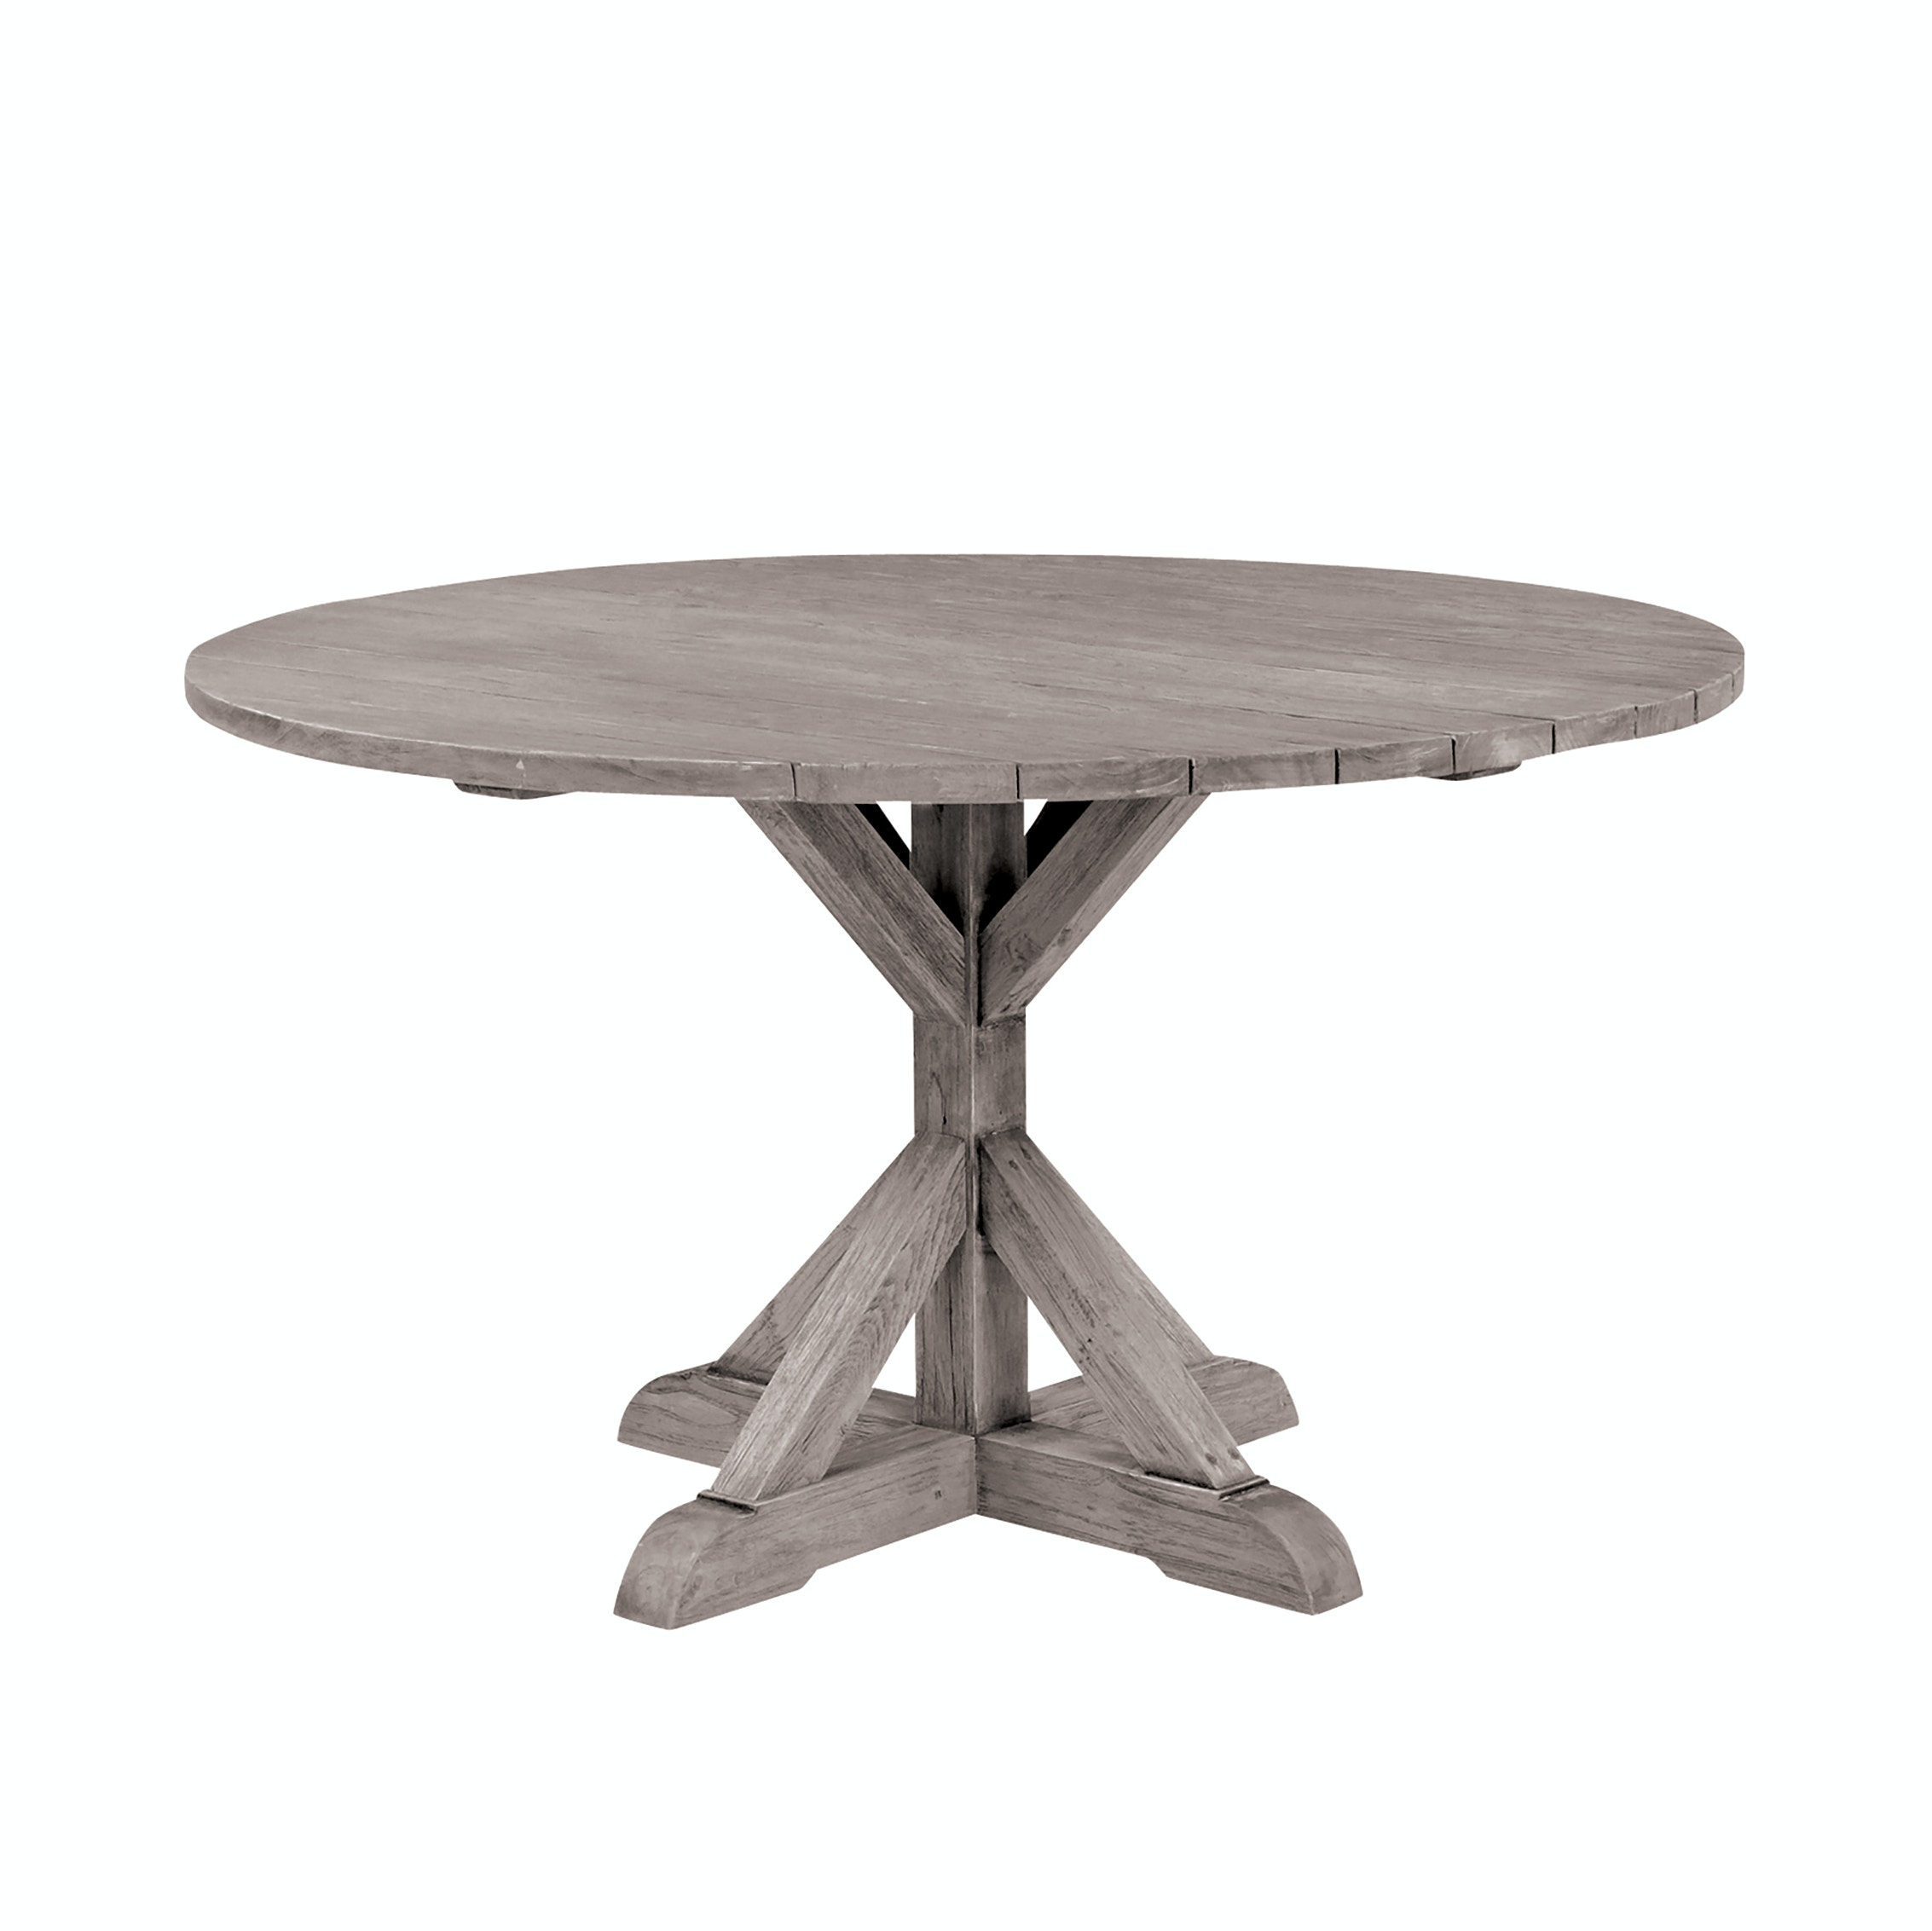 Kingsley Bate Provence Dining Table | Outdoor Furniture At KEY Home, Portland  OR